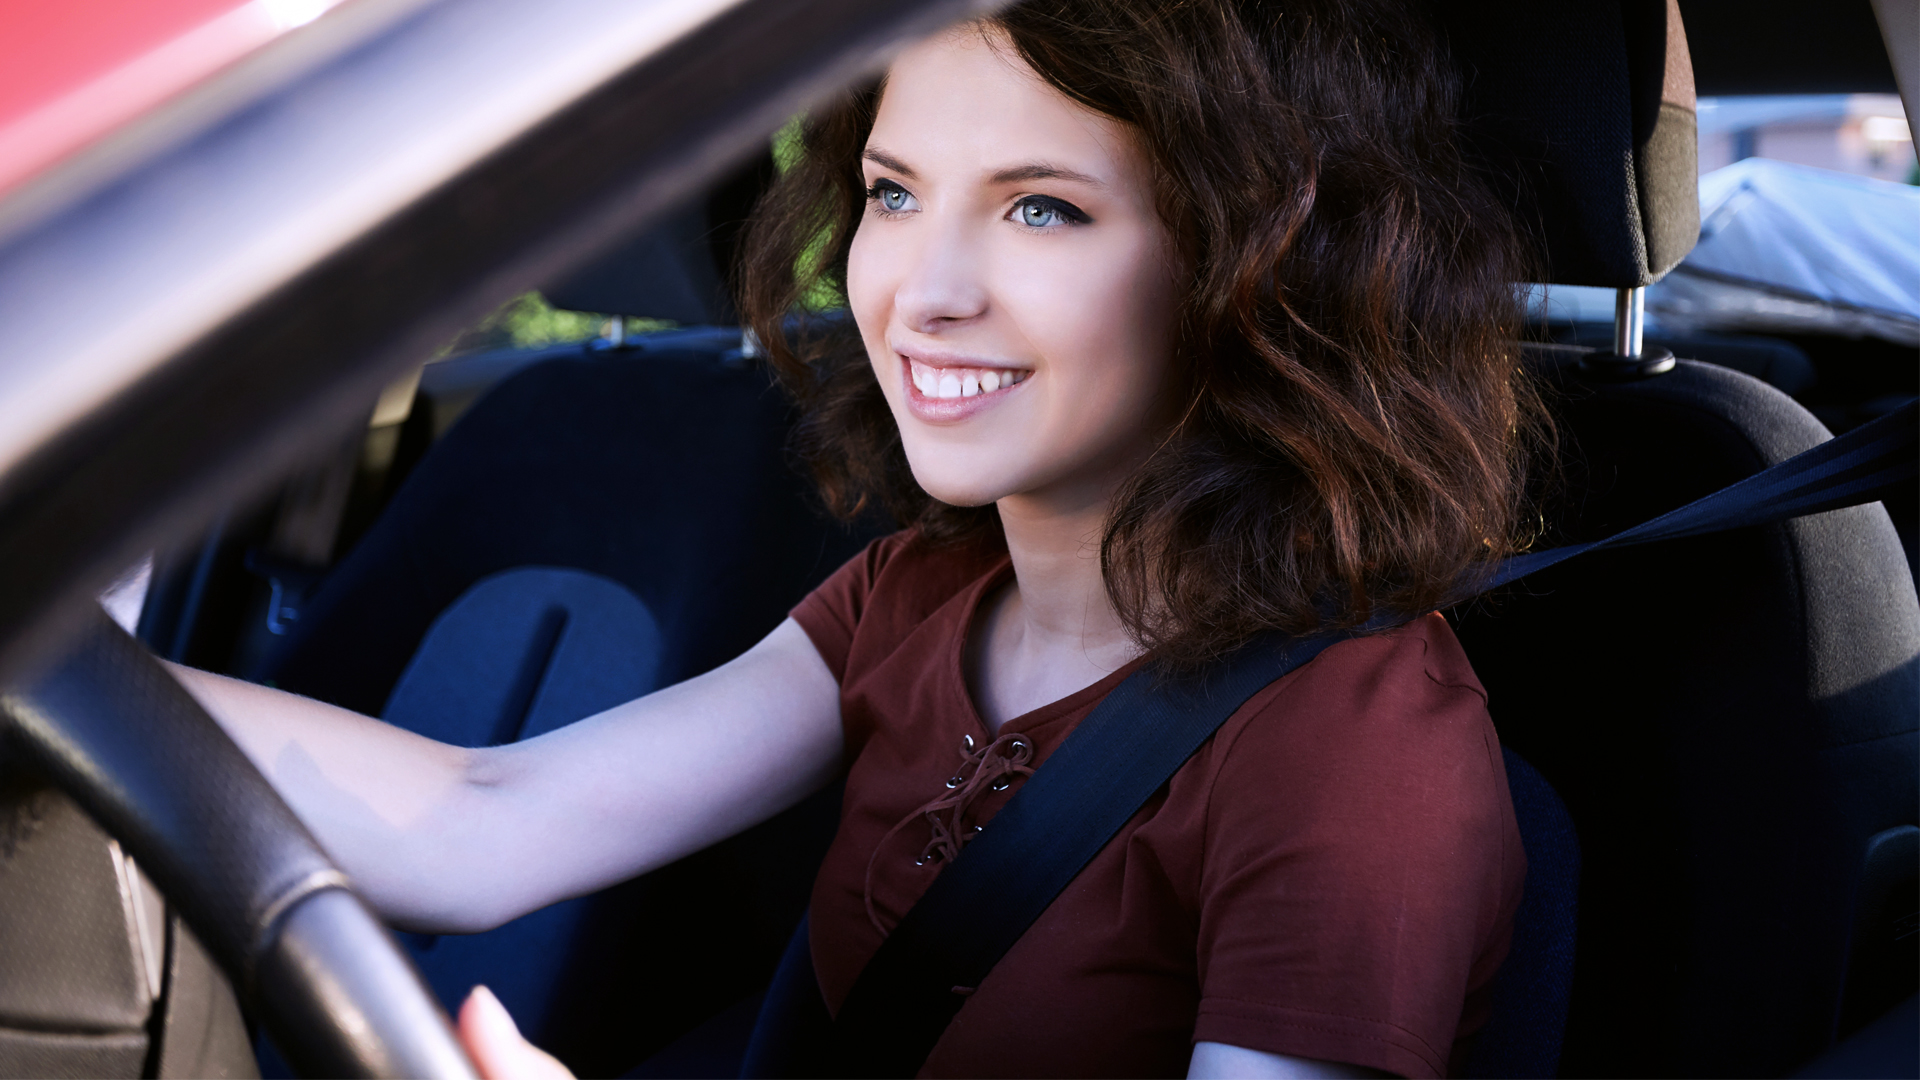 Underage Drinking and Driving Prevention